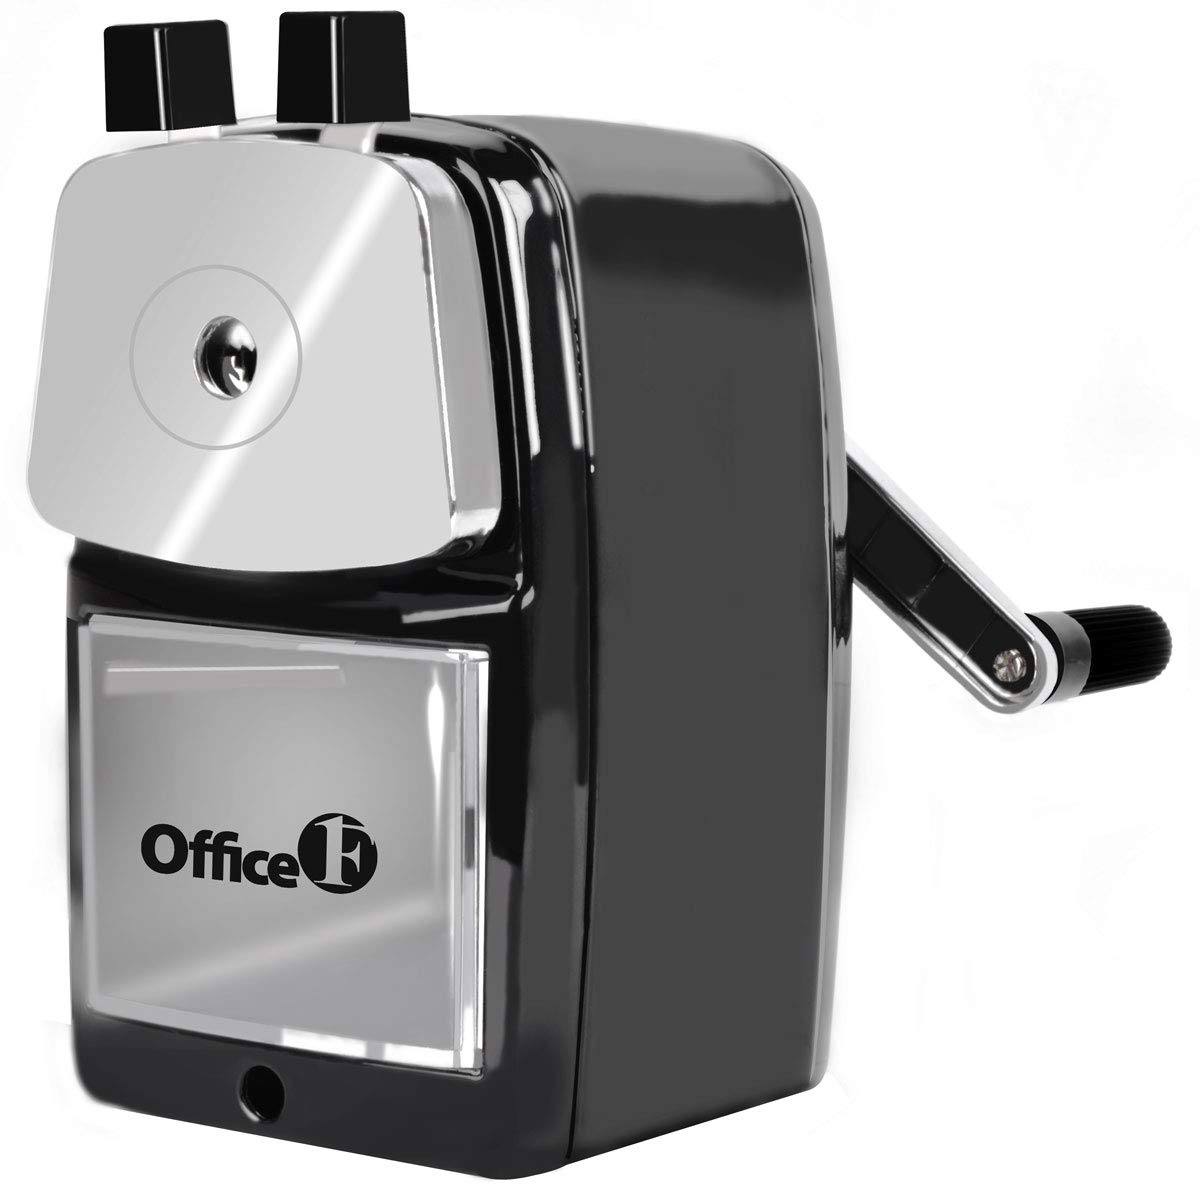 OFFICE1ST Manual Pencil Sharpener, Desk-Mount Portable Pencil Sharpener, Metal Body, Heavy-duty Helical Steel Blade, Suitable for Classroom, Office and Home (Black)